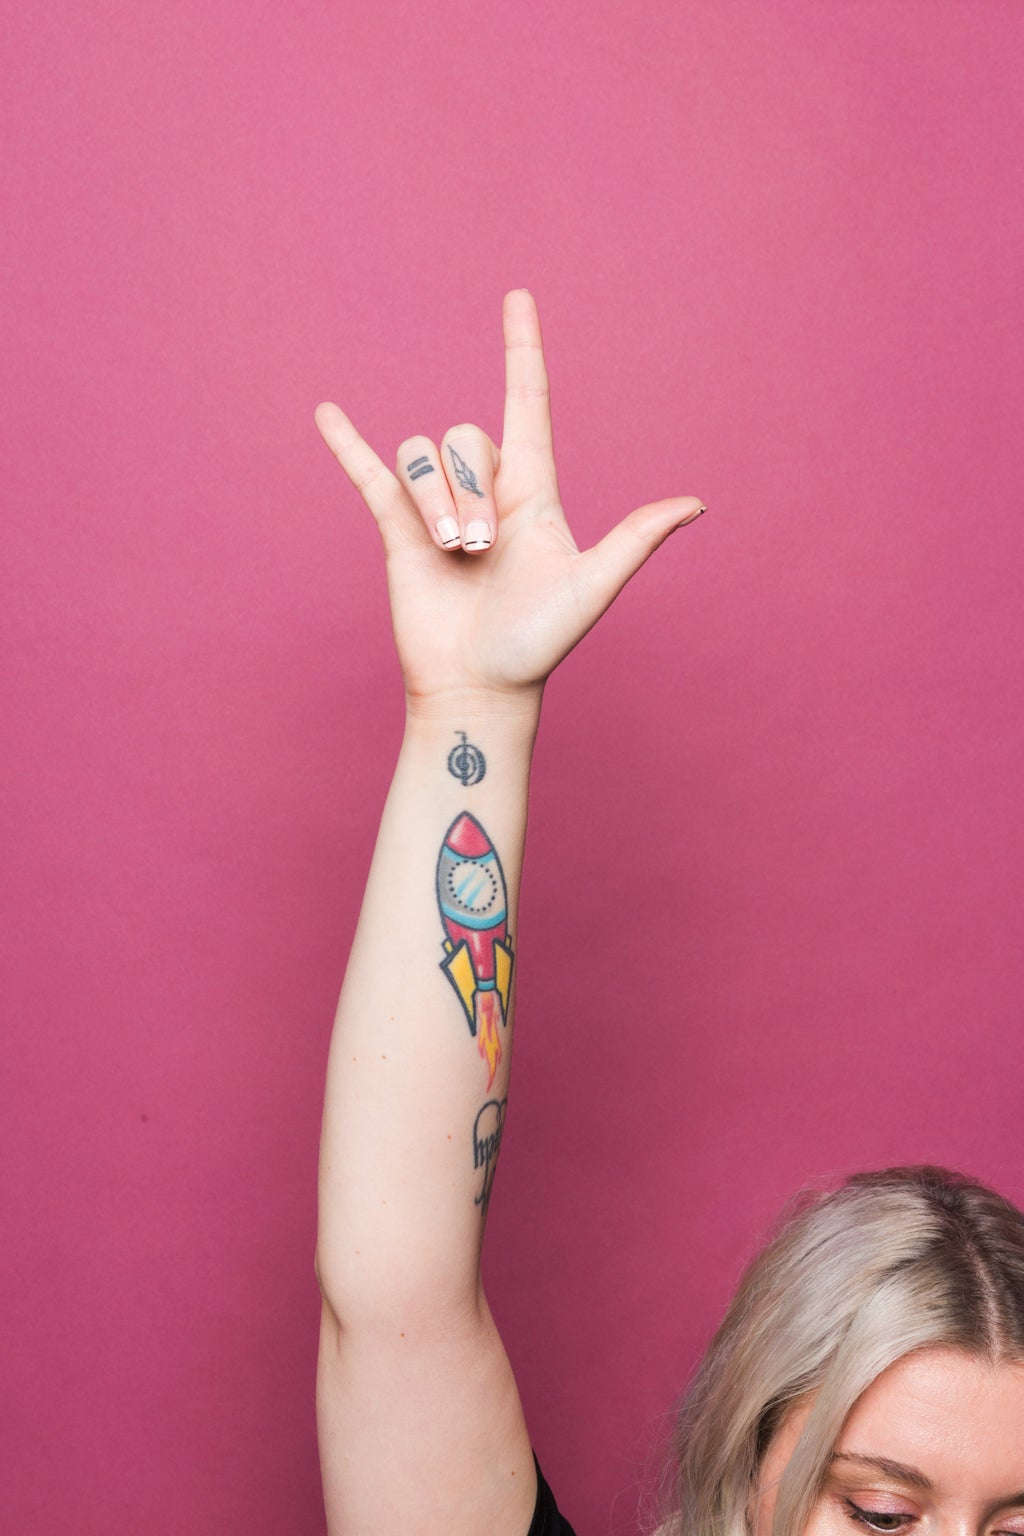 ASL Sign for ILY